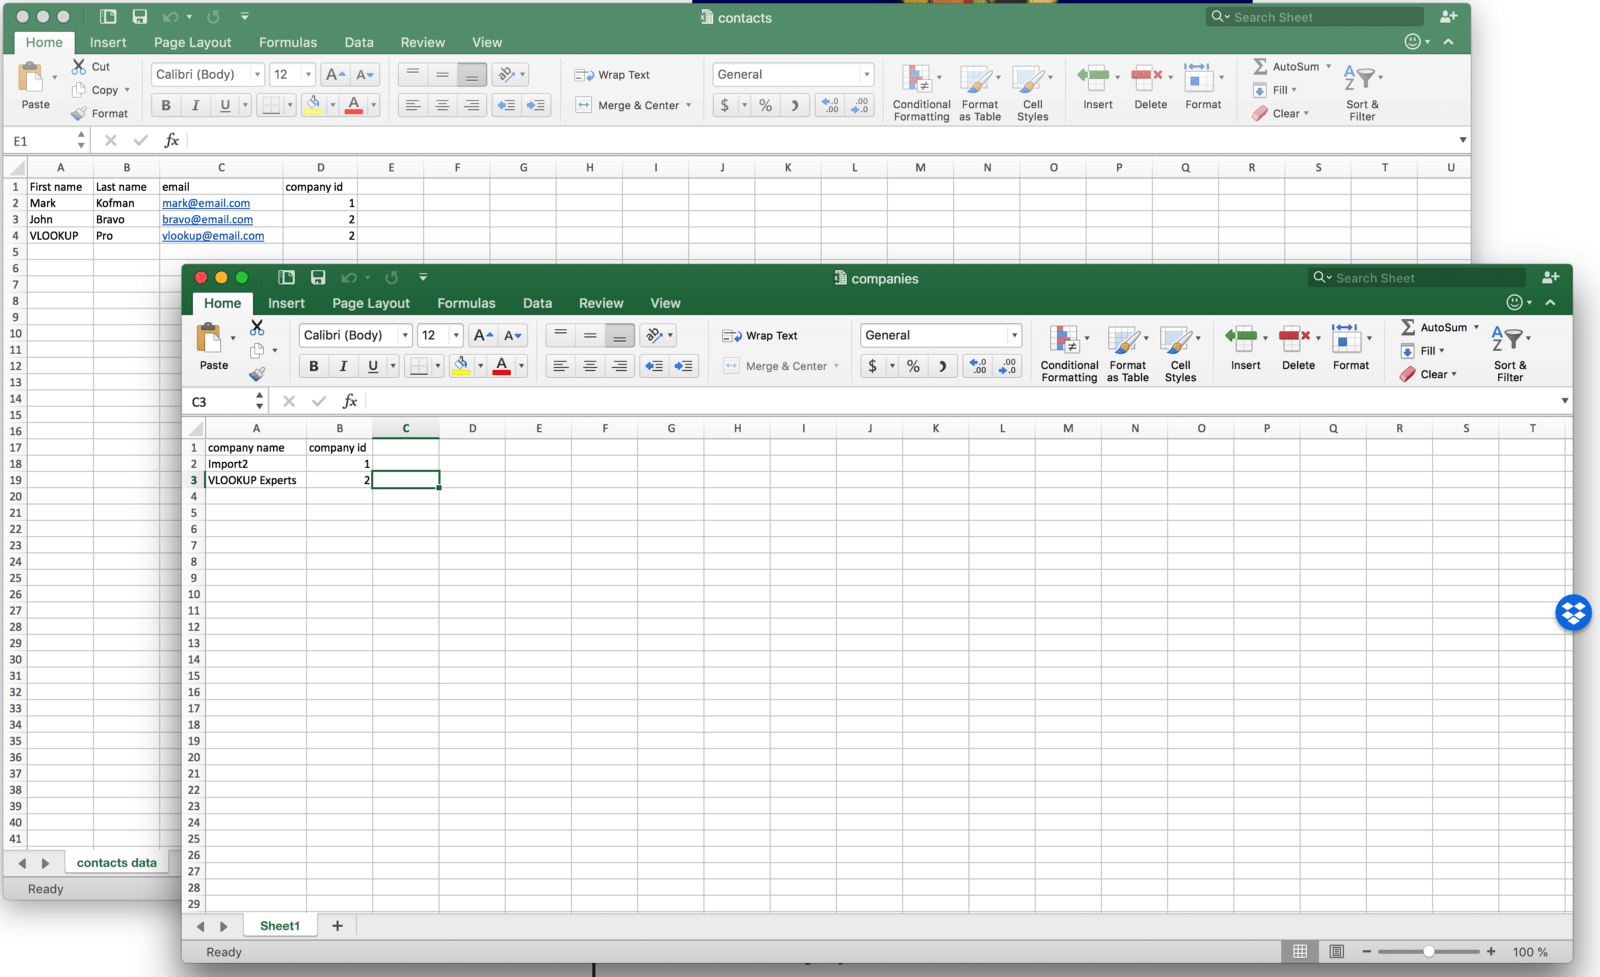 Join Multiple Data Sheets In Excel Using Vlookup Function